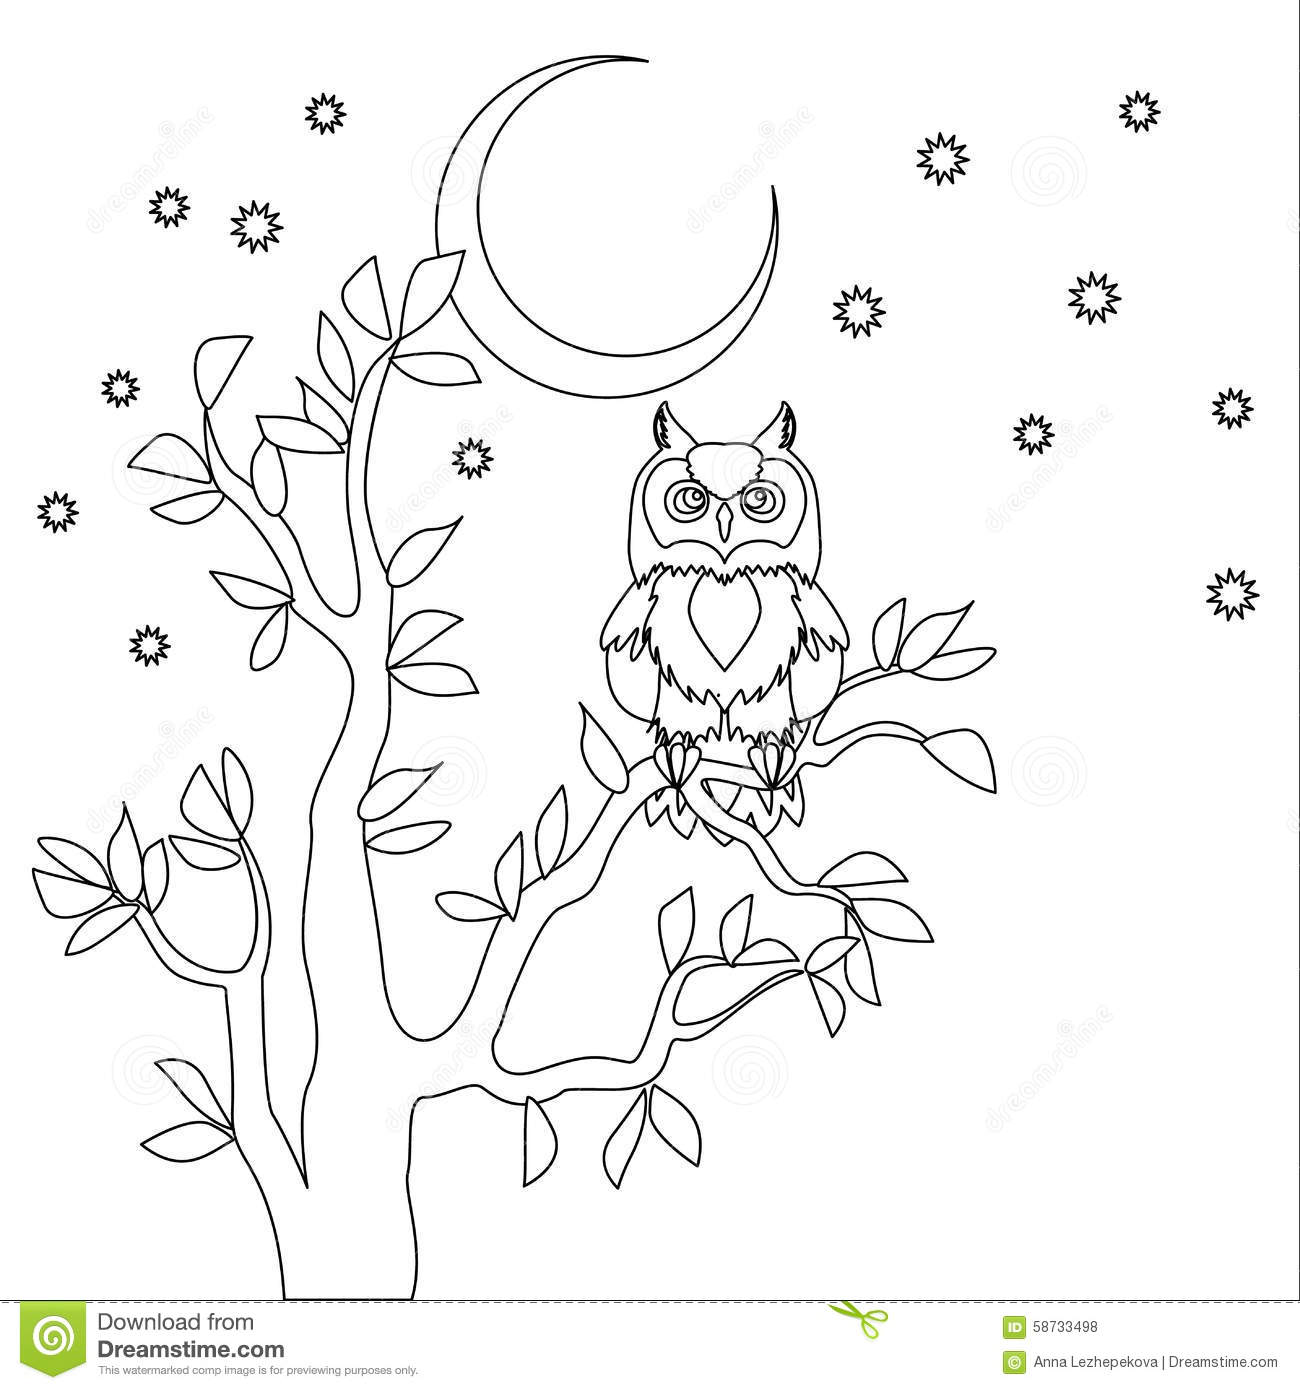 night time coloring pages - photo#11